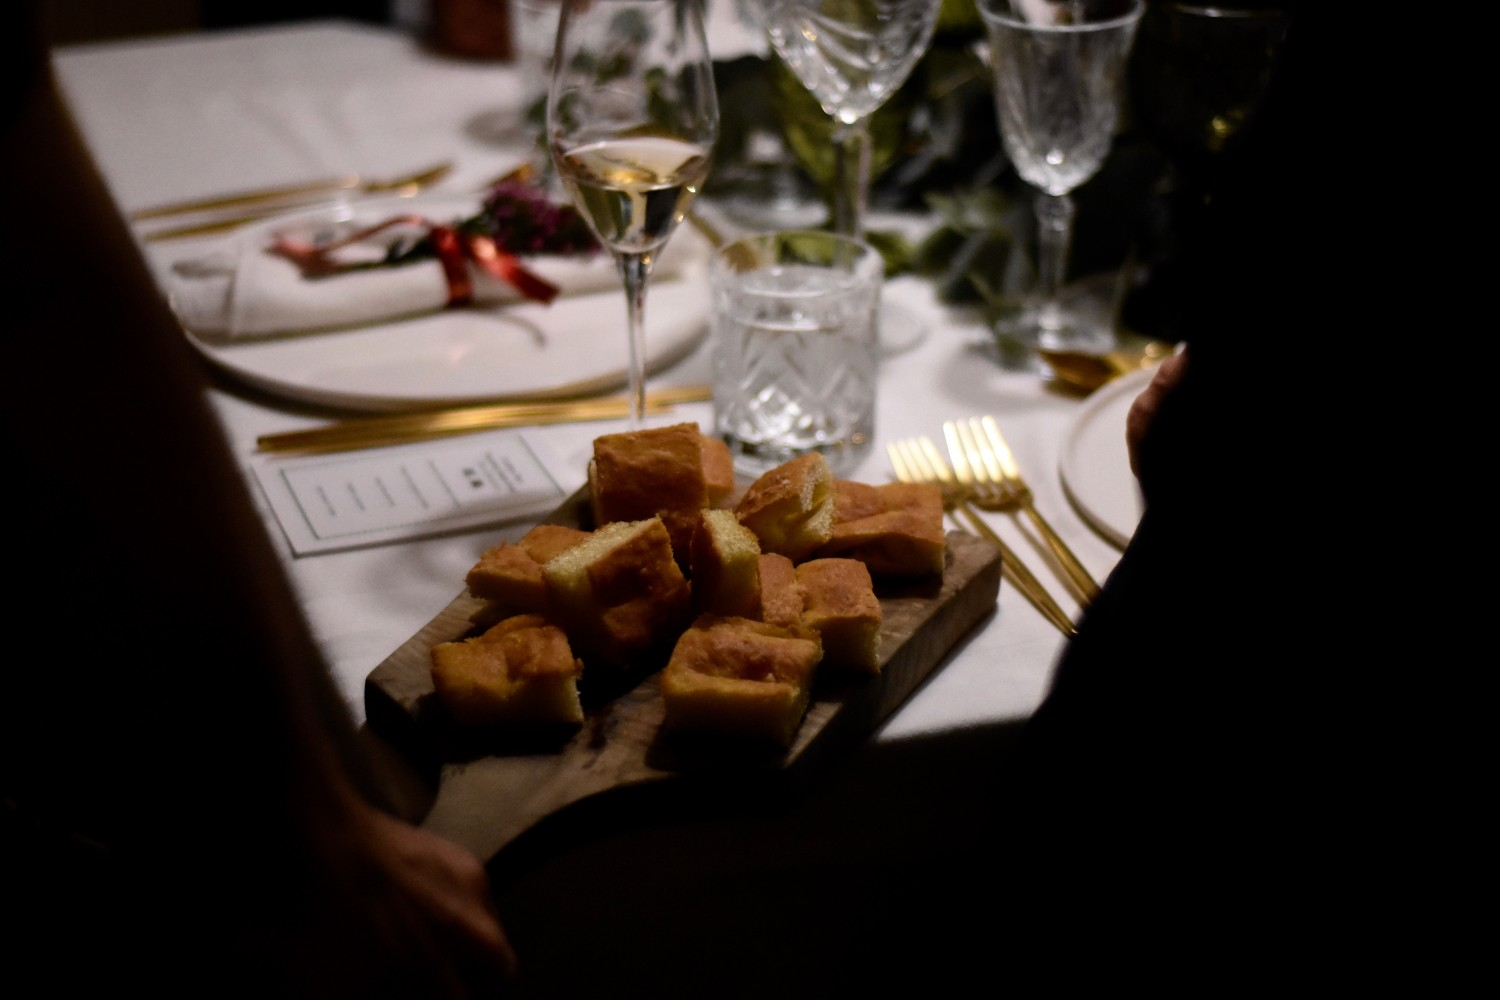 chefmade-laltro-annemette-voss-private-dining30